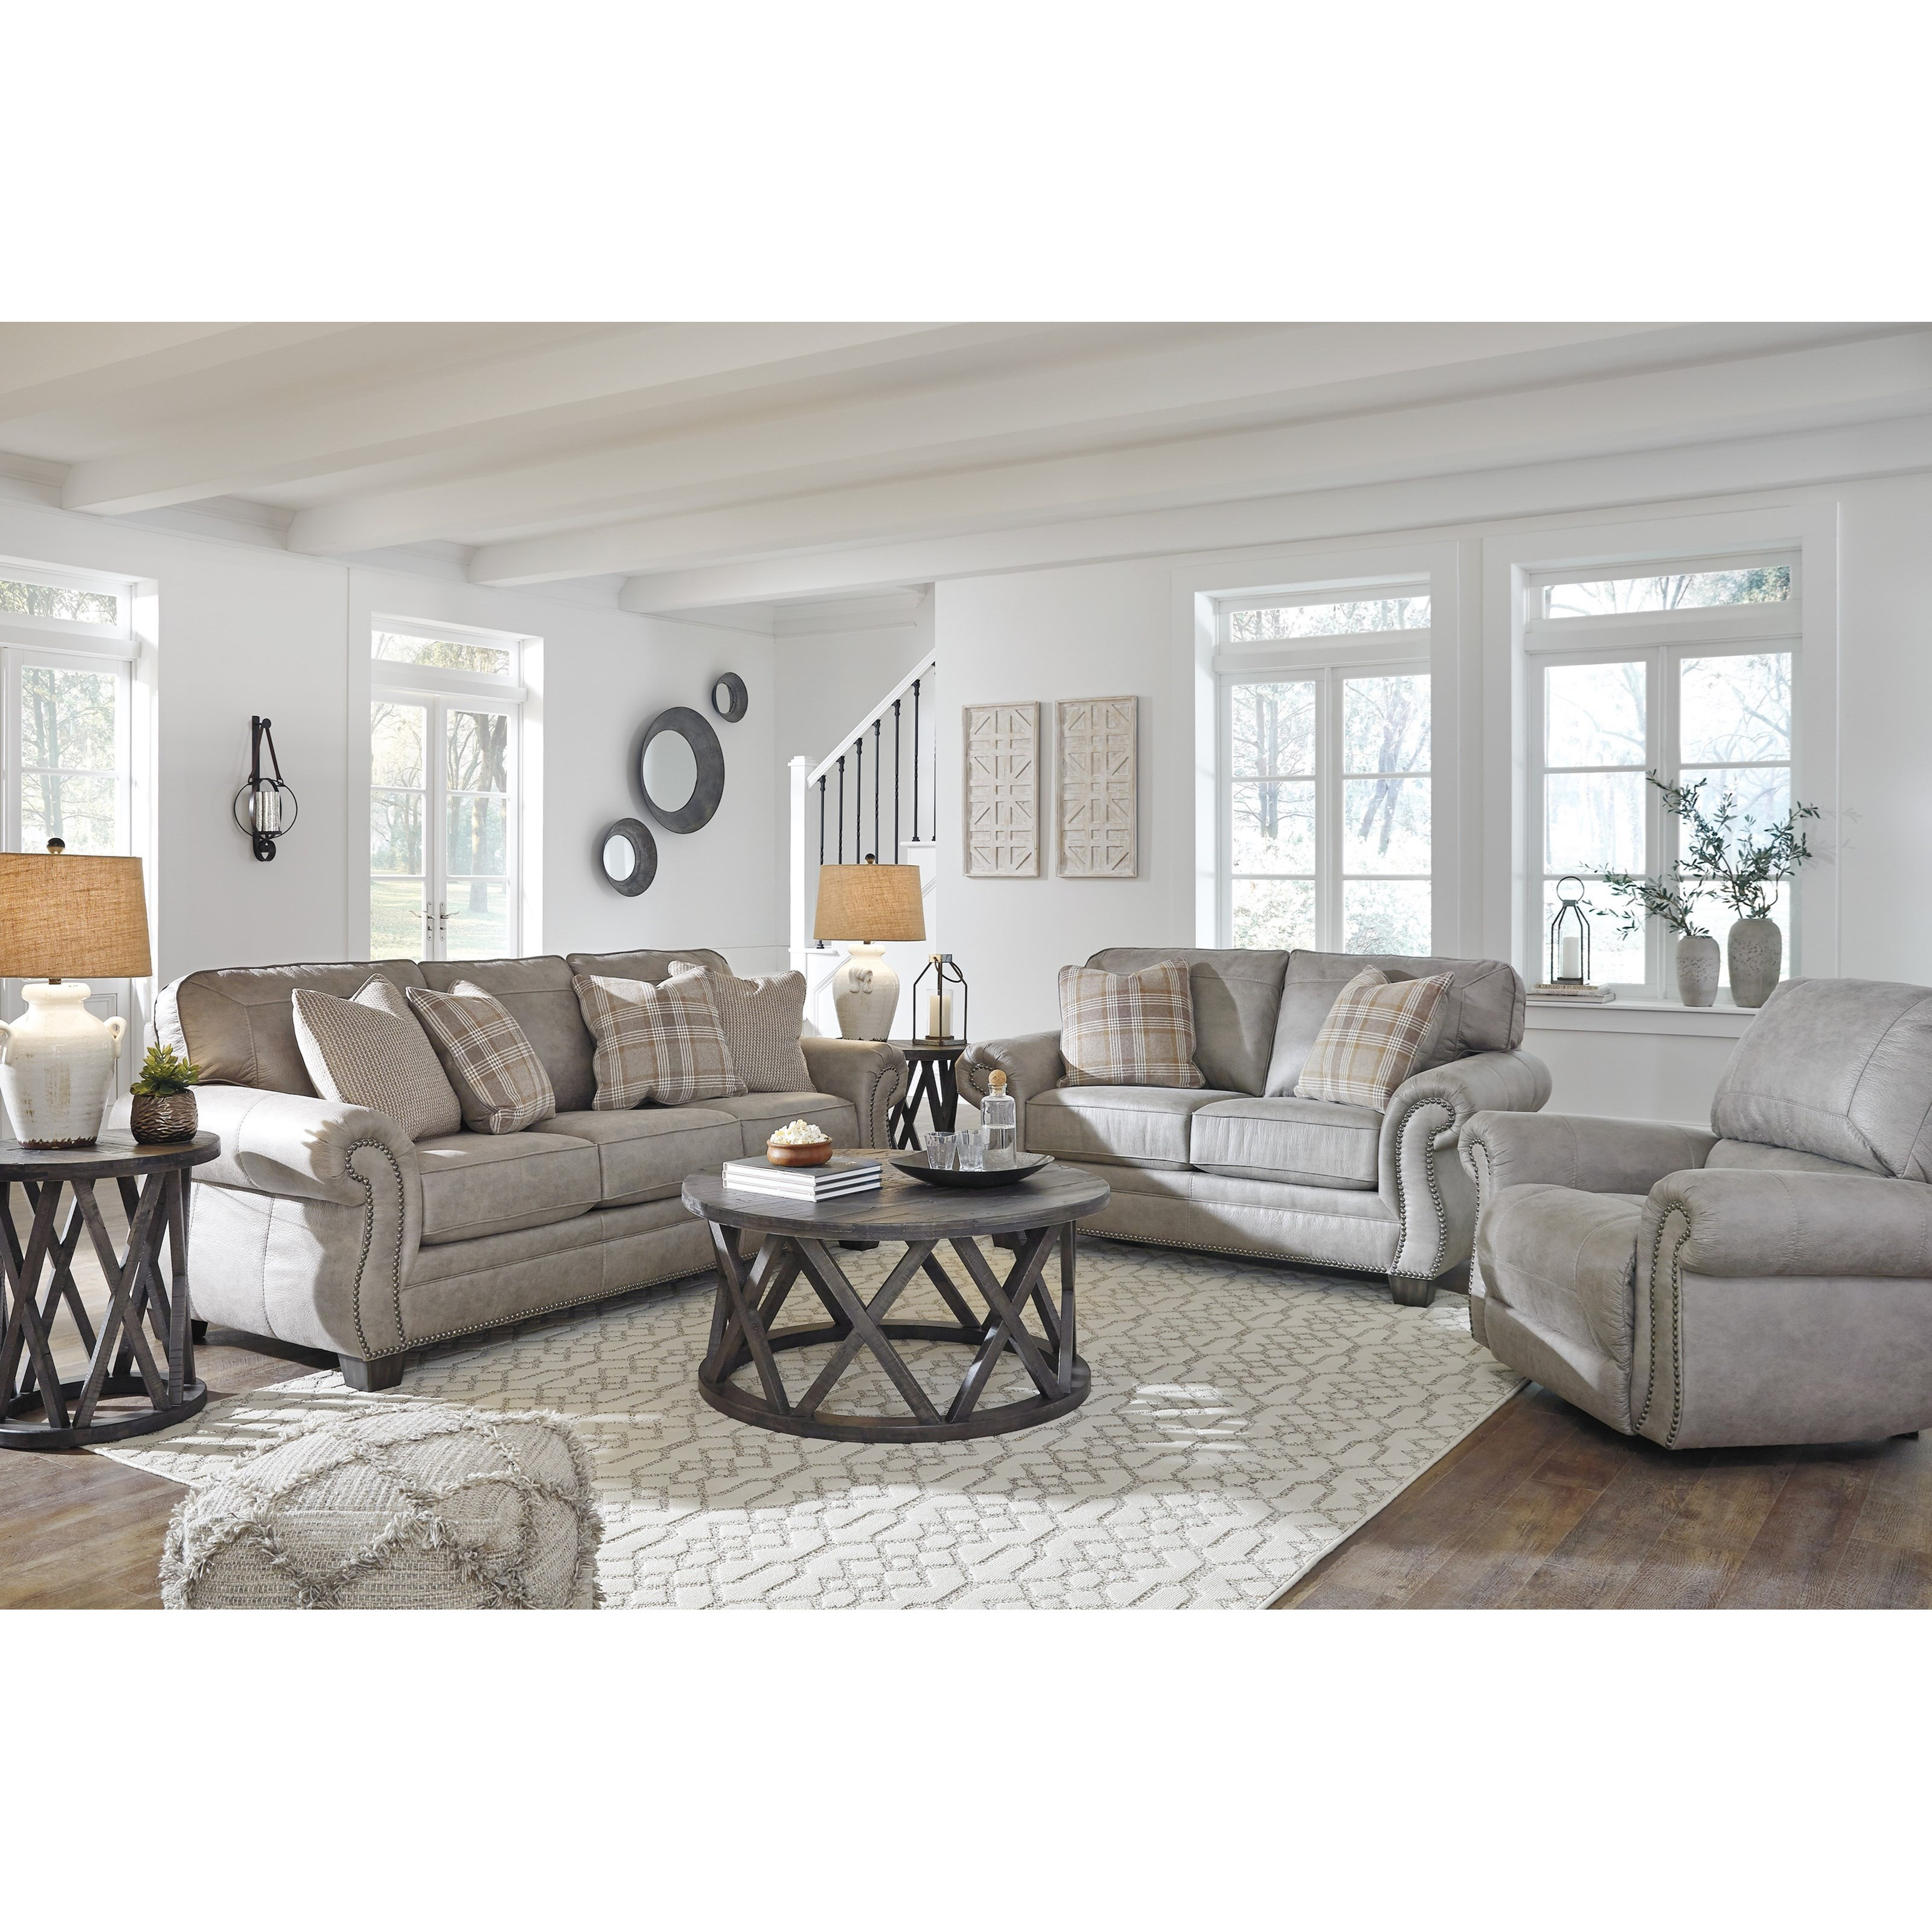 Ashley Furniture Signature Collection: Ashley Signature Design Olsberg Stationary Living Room